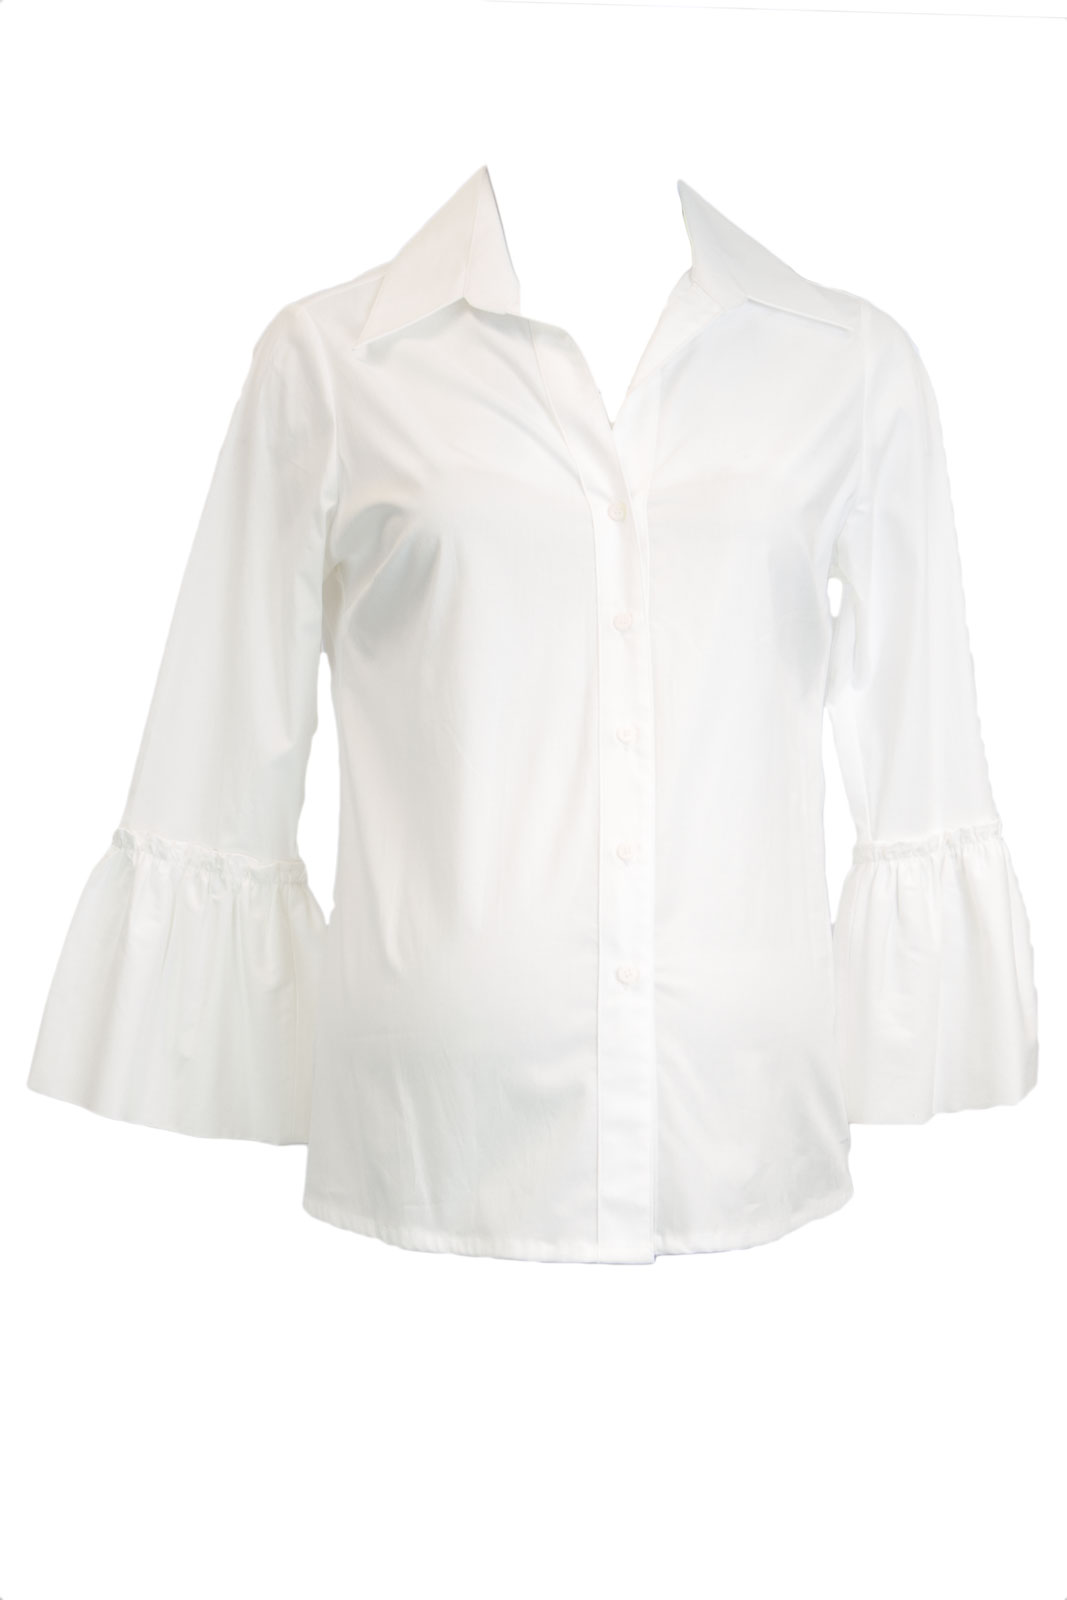 OLIAN Maternity Women's Bell Sleeve Button Down Collared Shirt X-Small White by N104